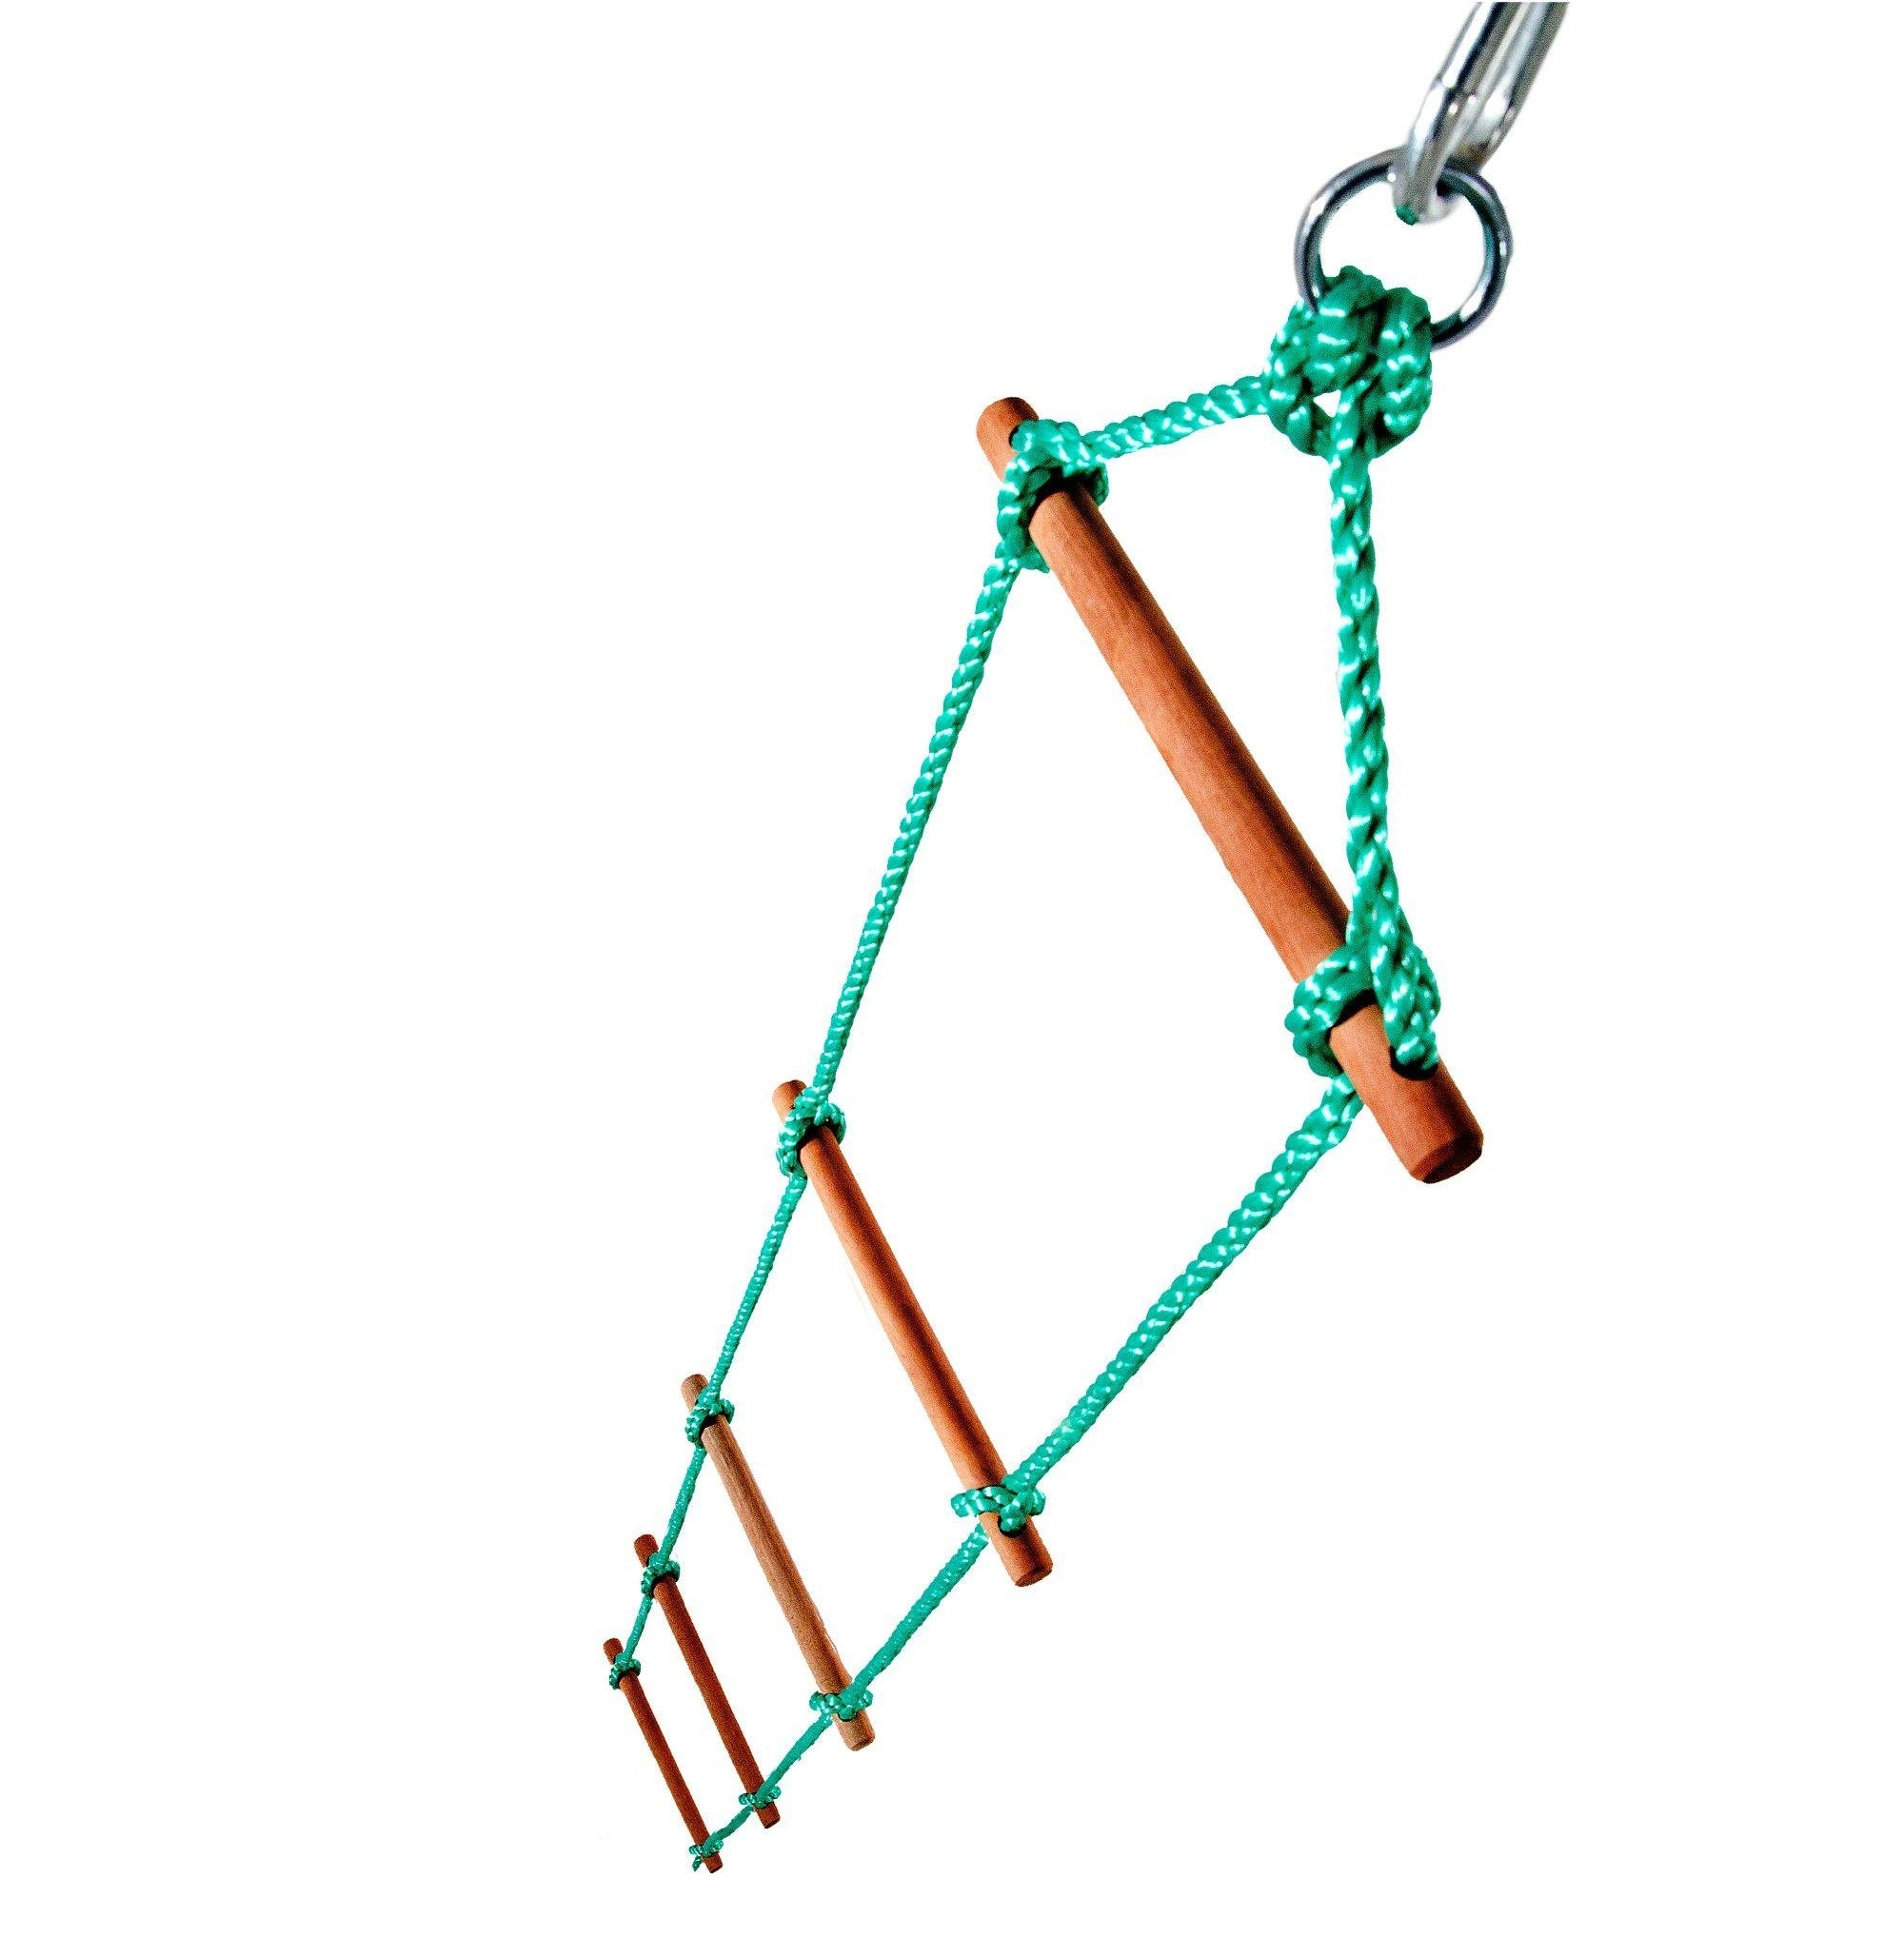 plum wooden rope ladder accessory.